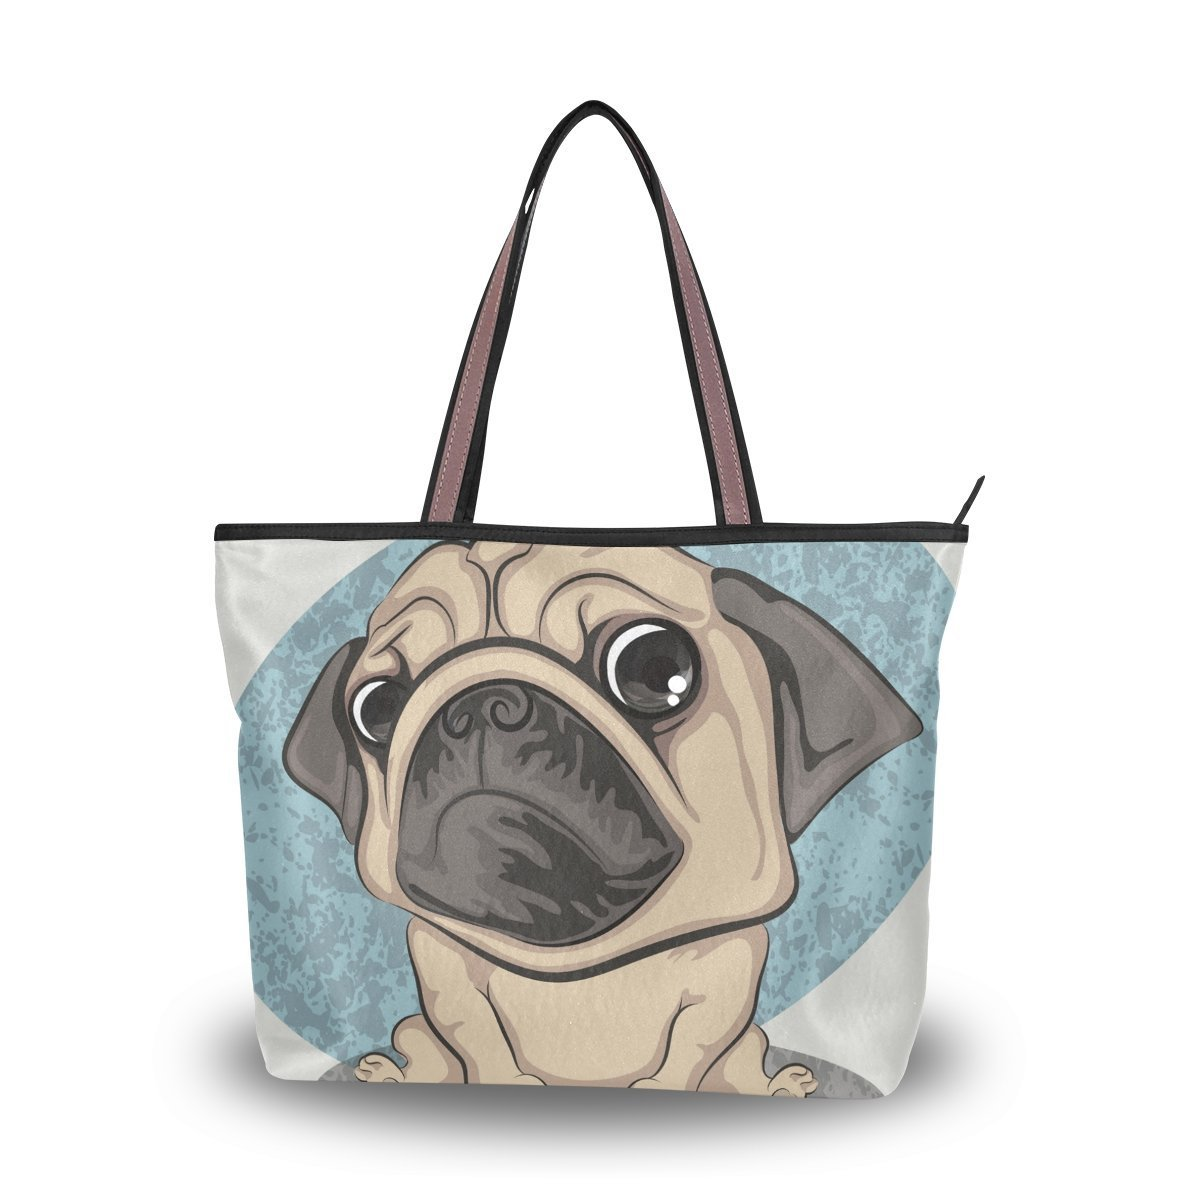 Cute Pug Tote Bags Women's Stylish Travel Totes Fabric Zippered Tote for Shopping Handbag